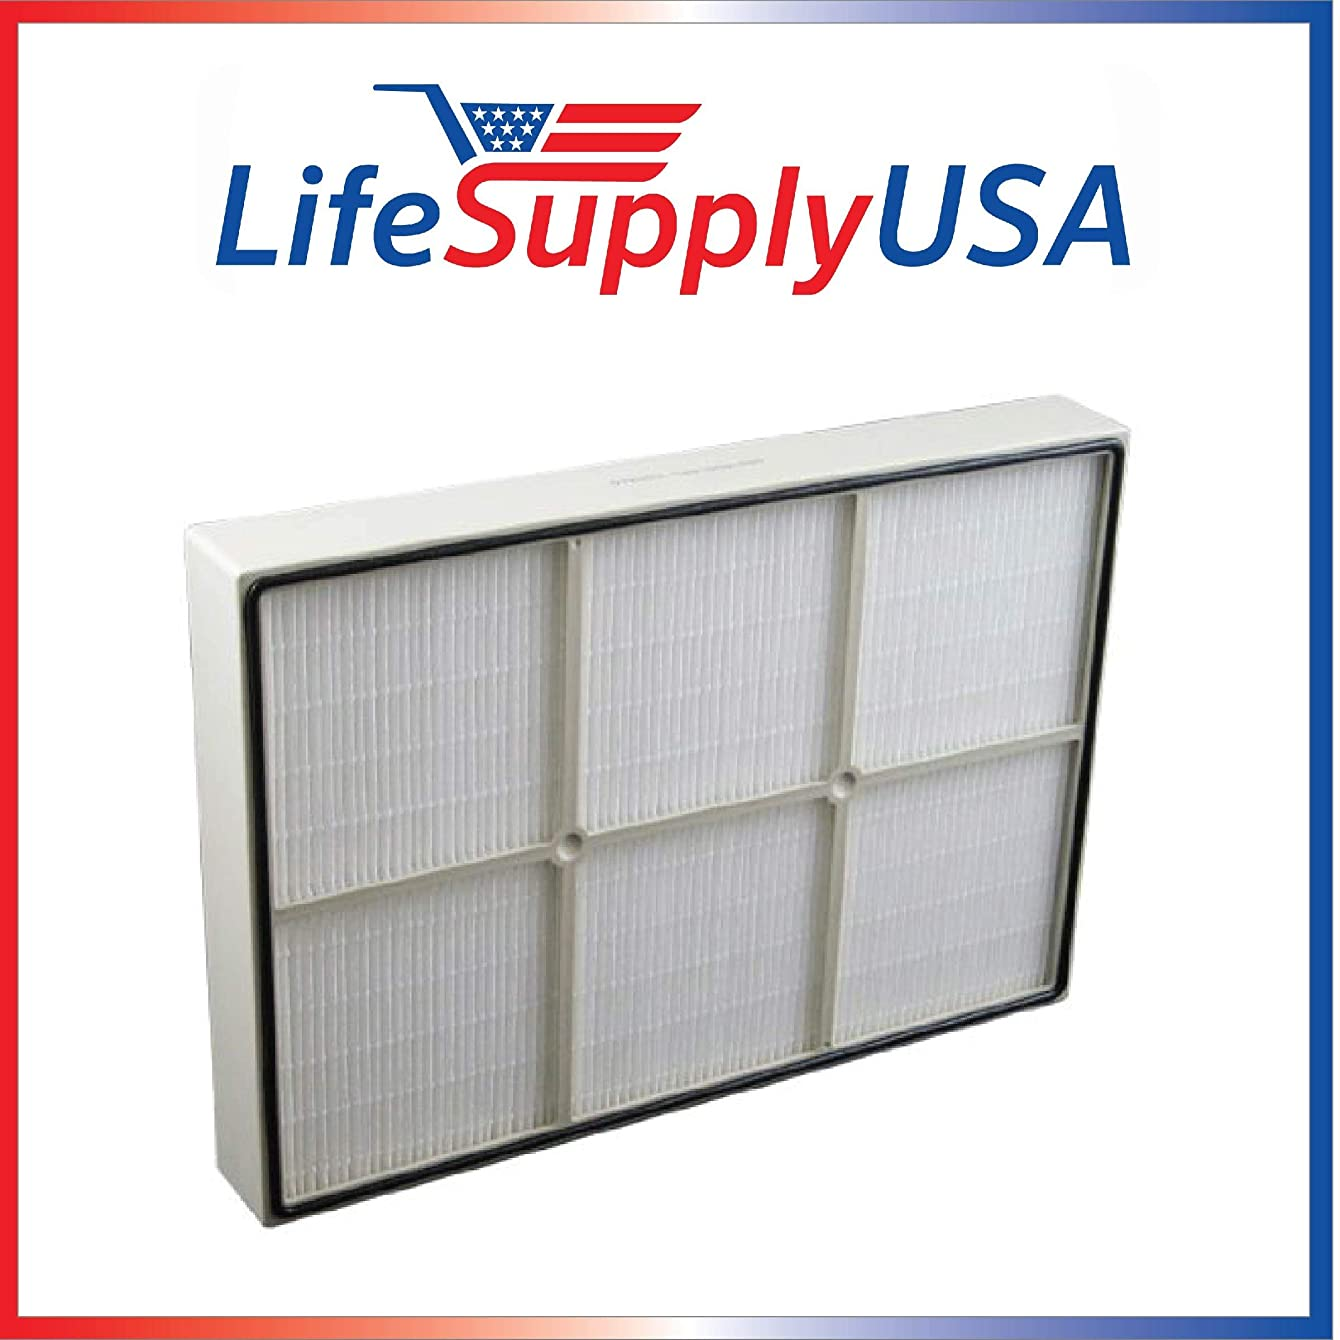 LifeSupplyUSA True HEPA Replacement Filter for Kenmore 83353, 83374, 83234, Small 1183051 Sears Kenmore Air Cleaner